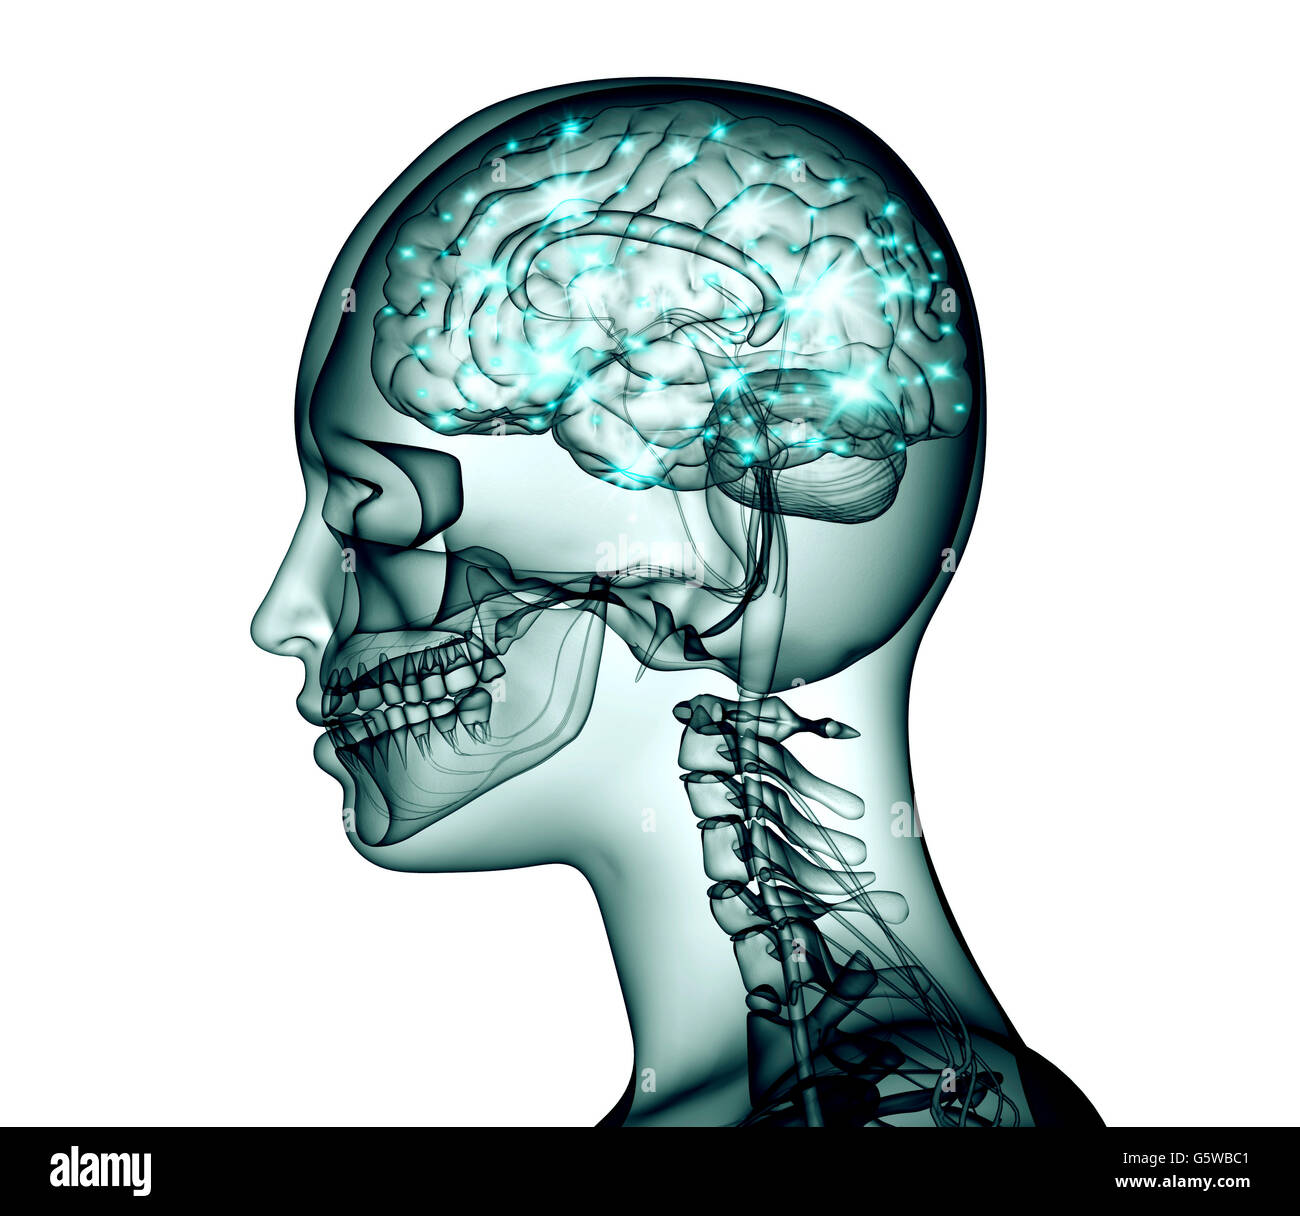 x-ray image of human head with brain and electric pulses, 3d illustration - Stock Image